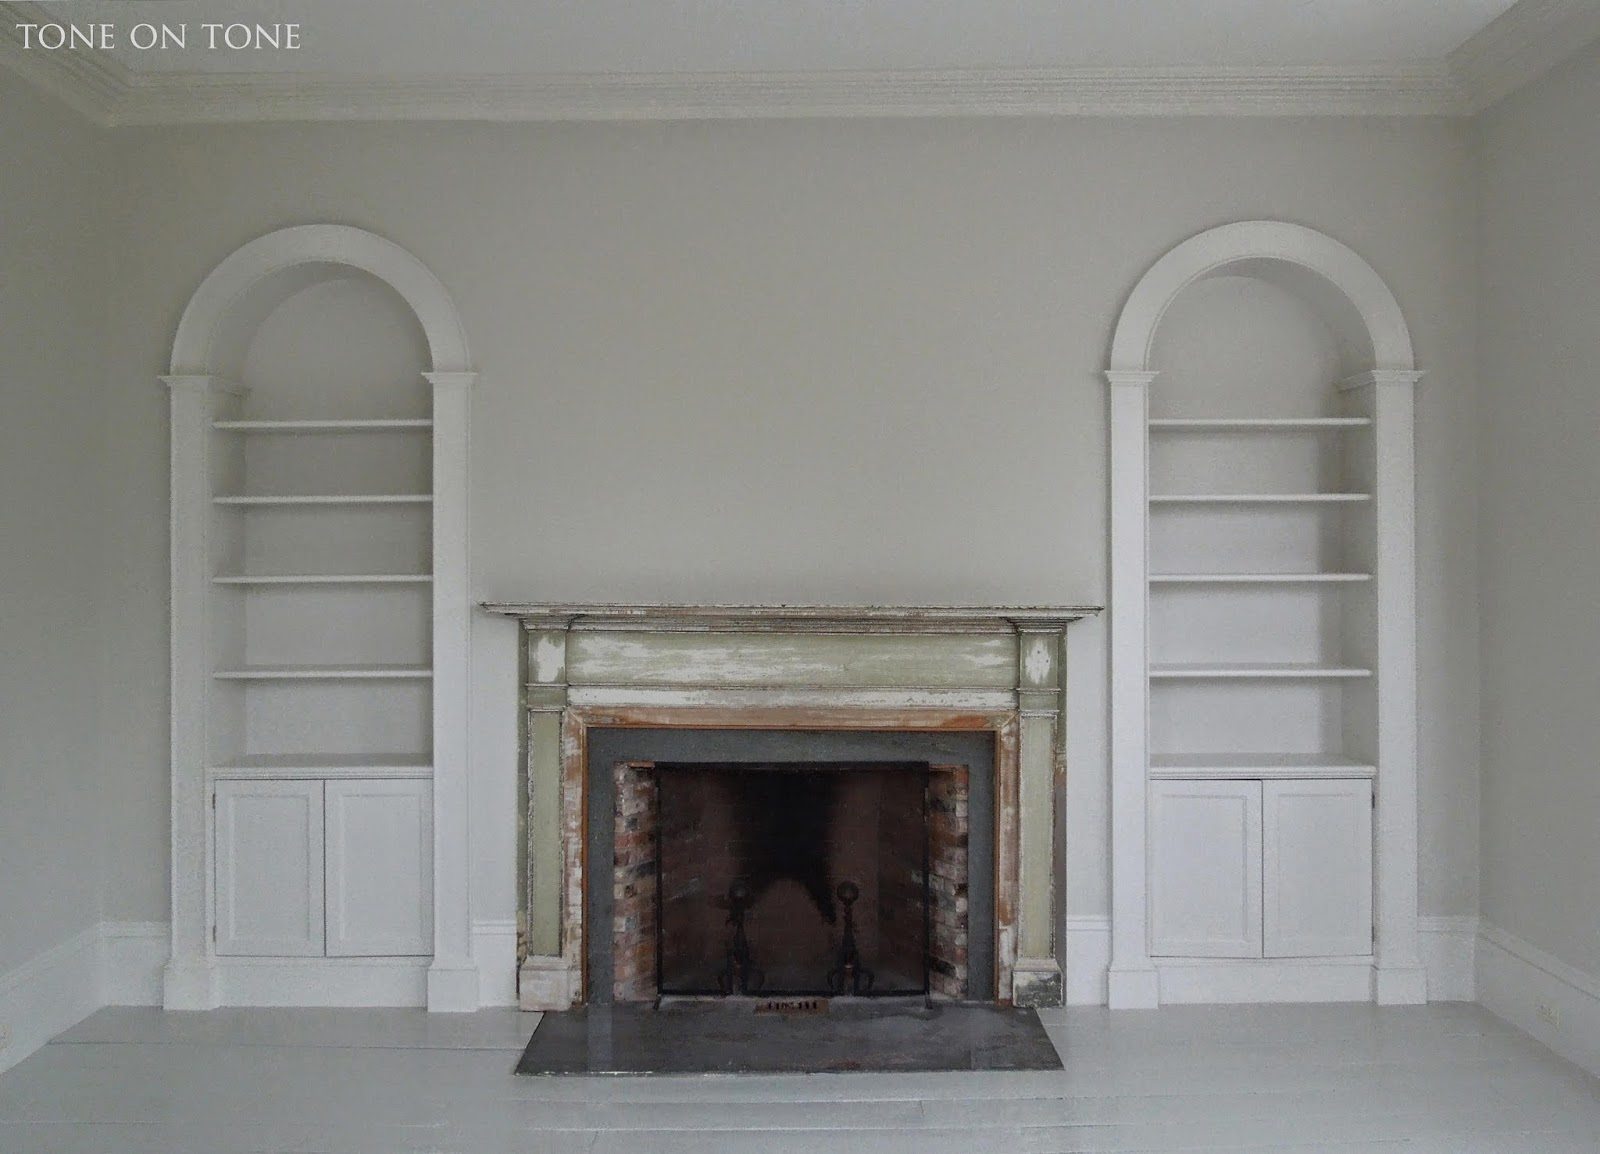 Living Room With An Arched Over Mantel Niche BELOW The Living Room